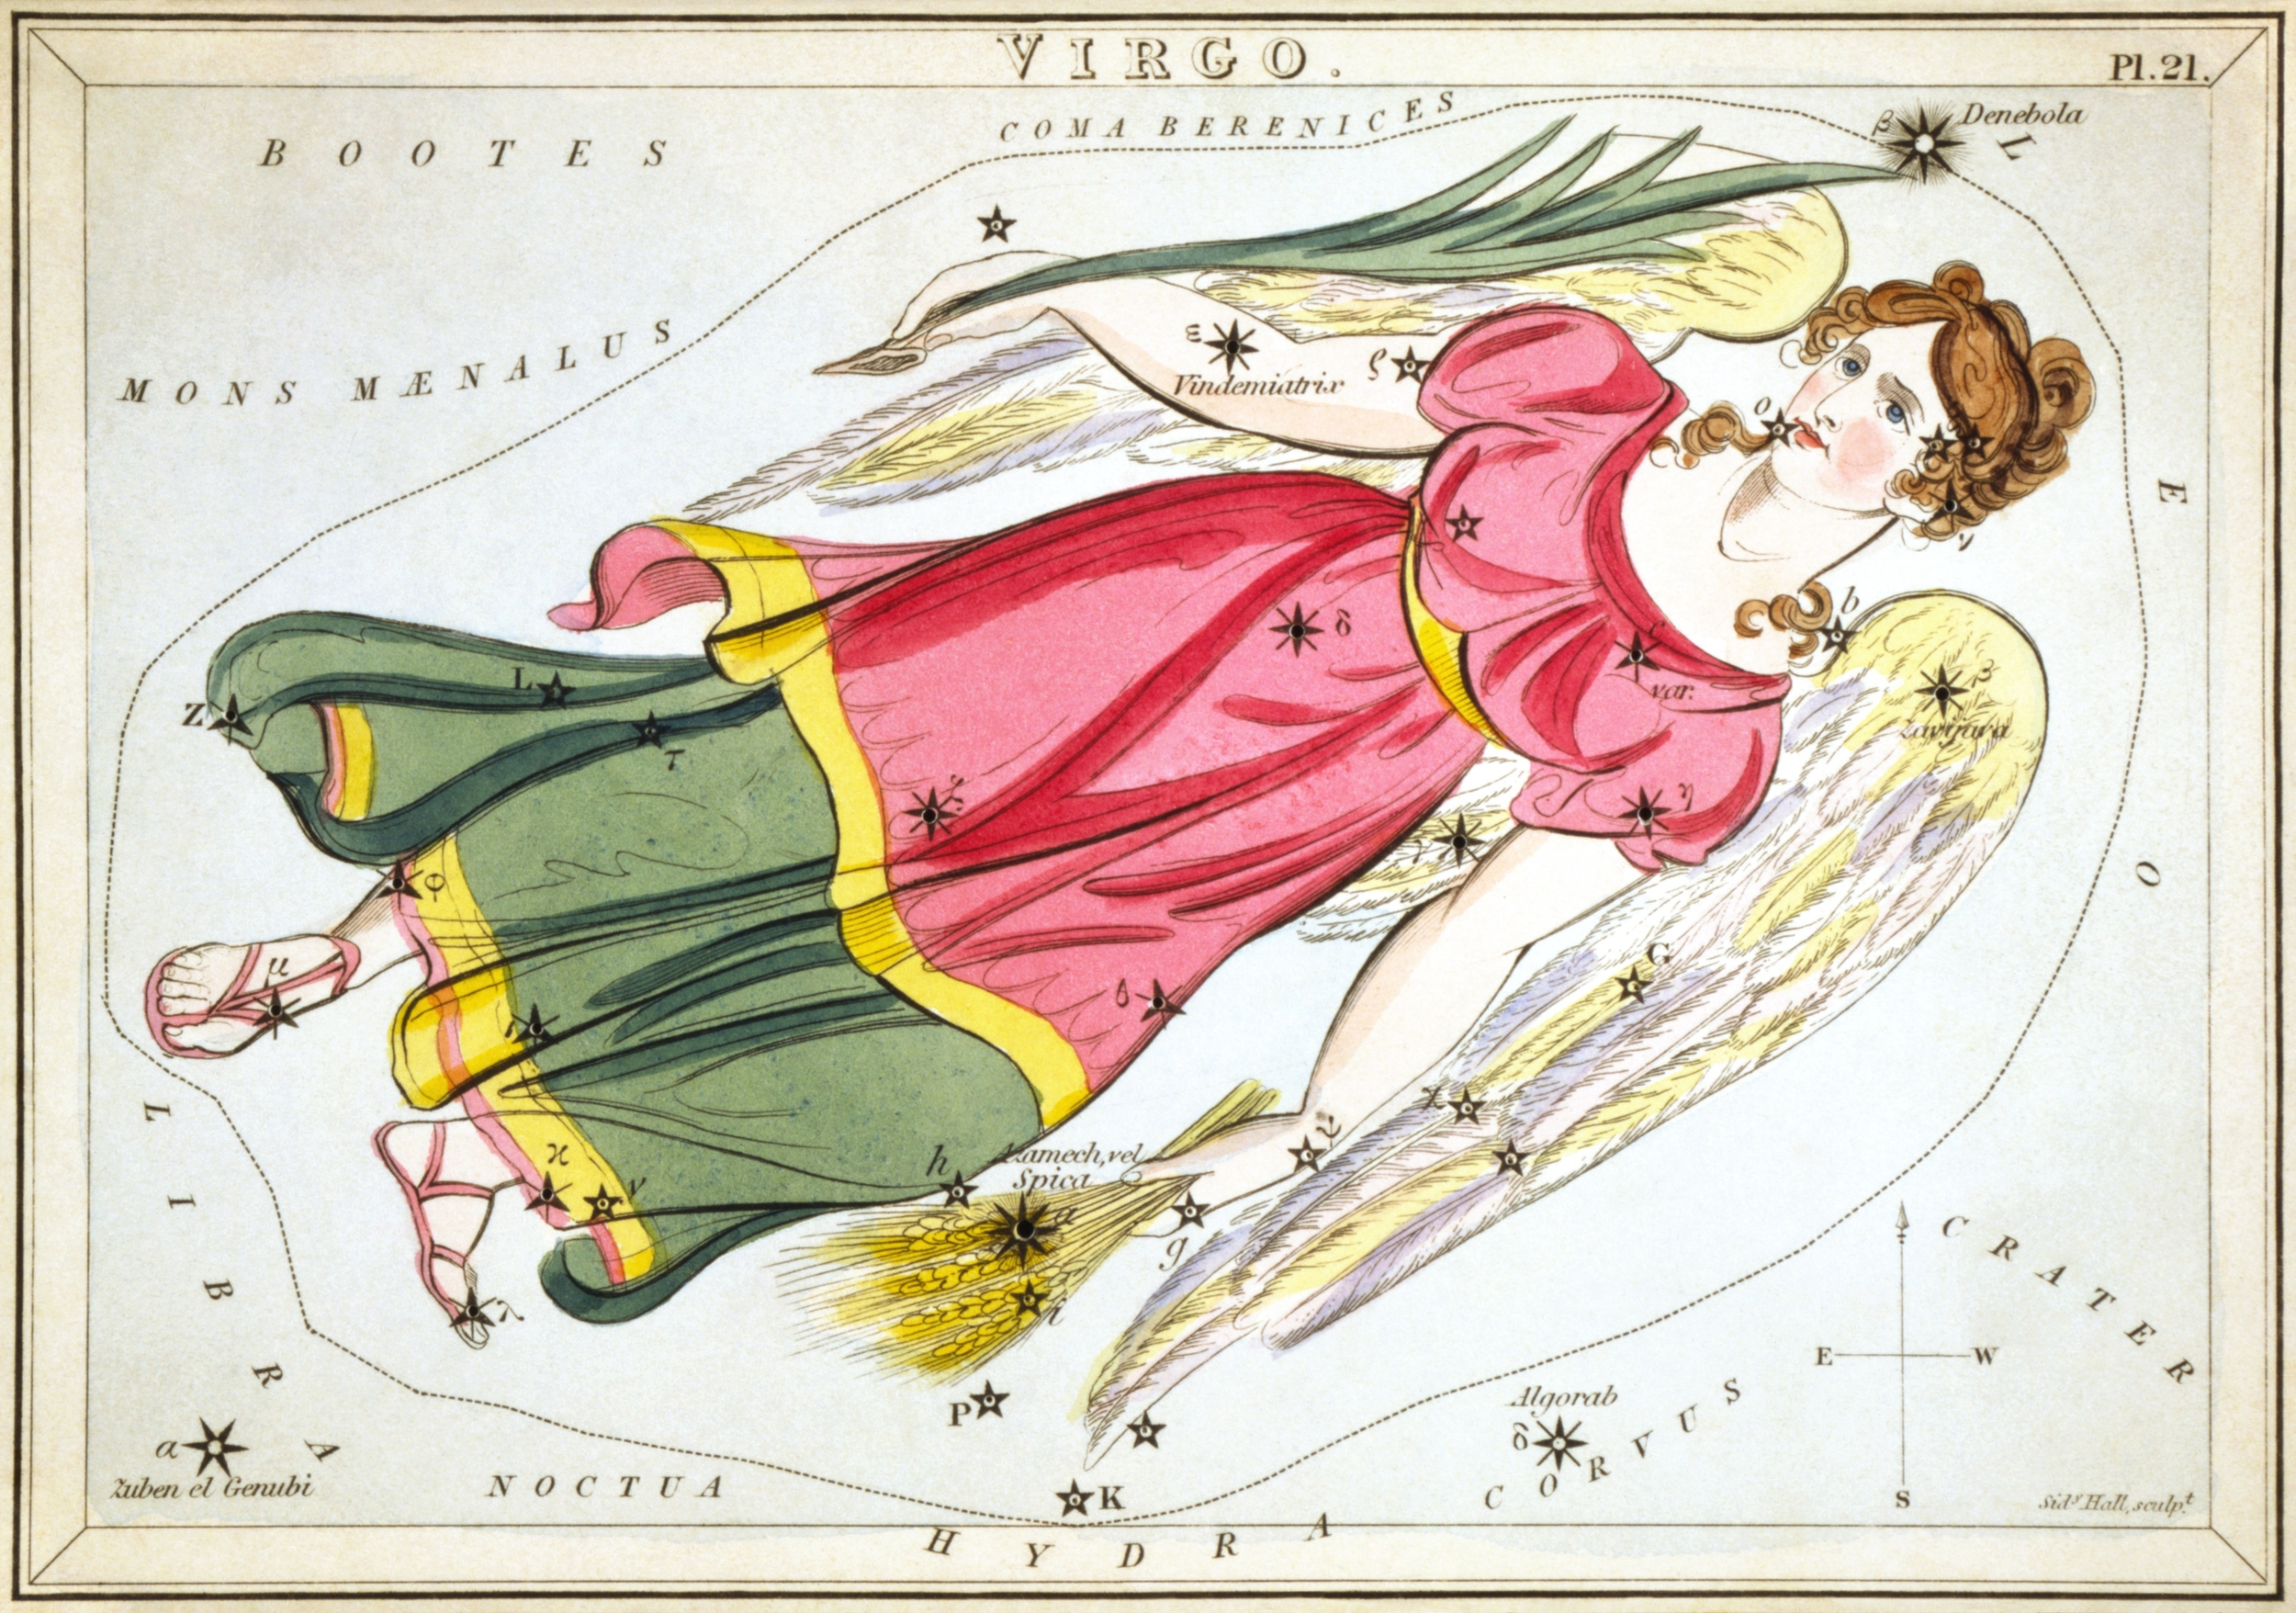 Virgo, Urania's Mirror star chart cards (1824)